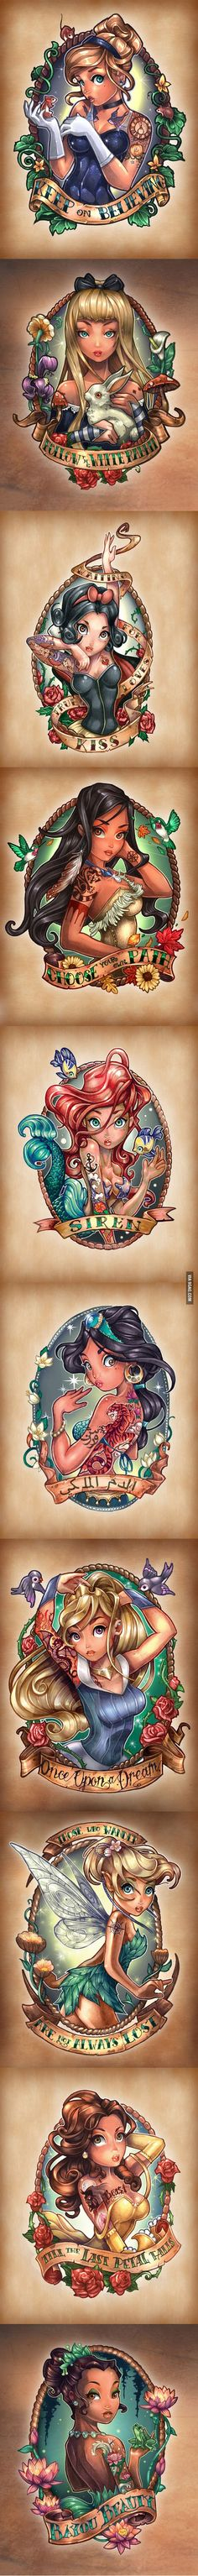 Disney Princesses As Fierce Vintage Tattooed Pin-Ups